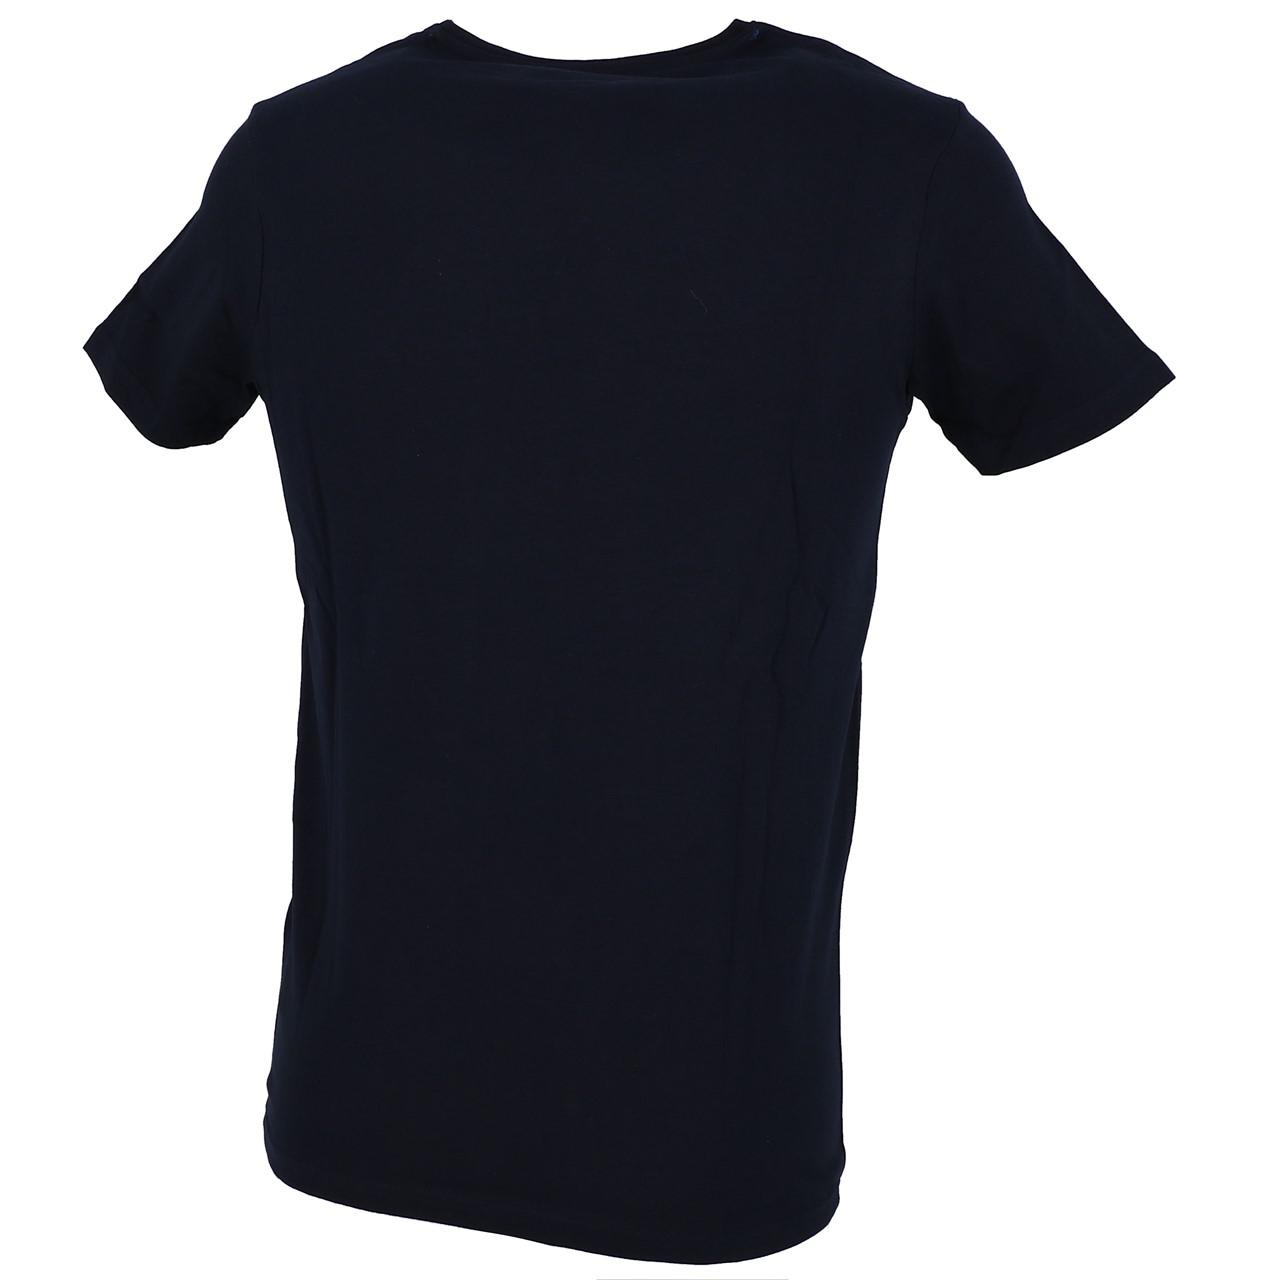 Short-La-maison-blaggio-Mably-Navy-Mc-Tee-Blue-93613-New thumbnail 5